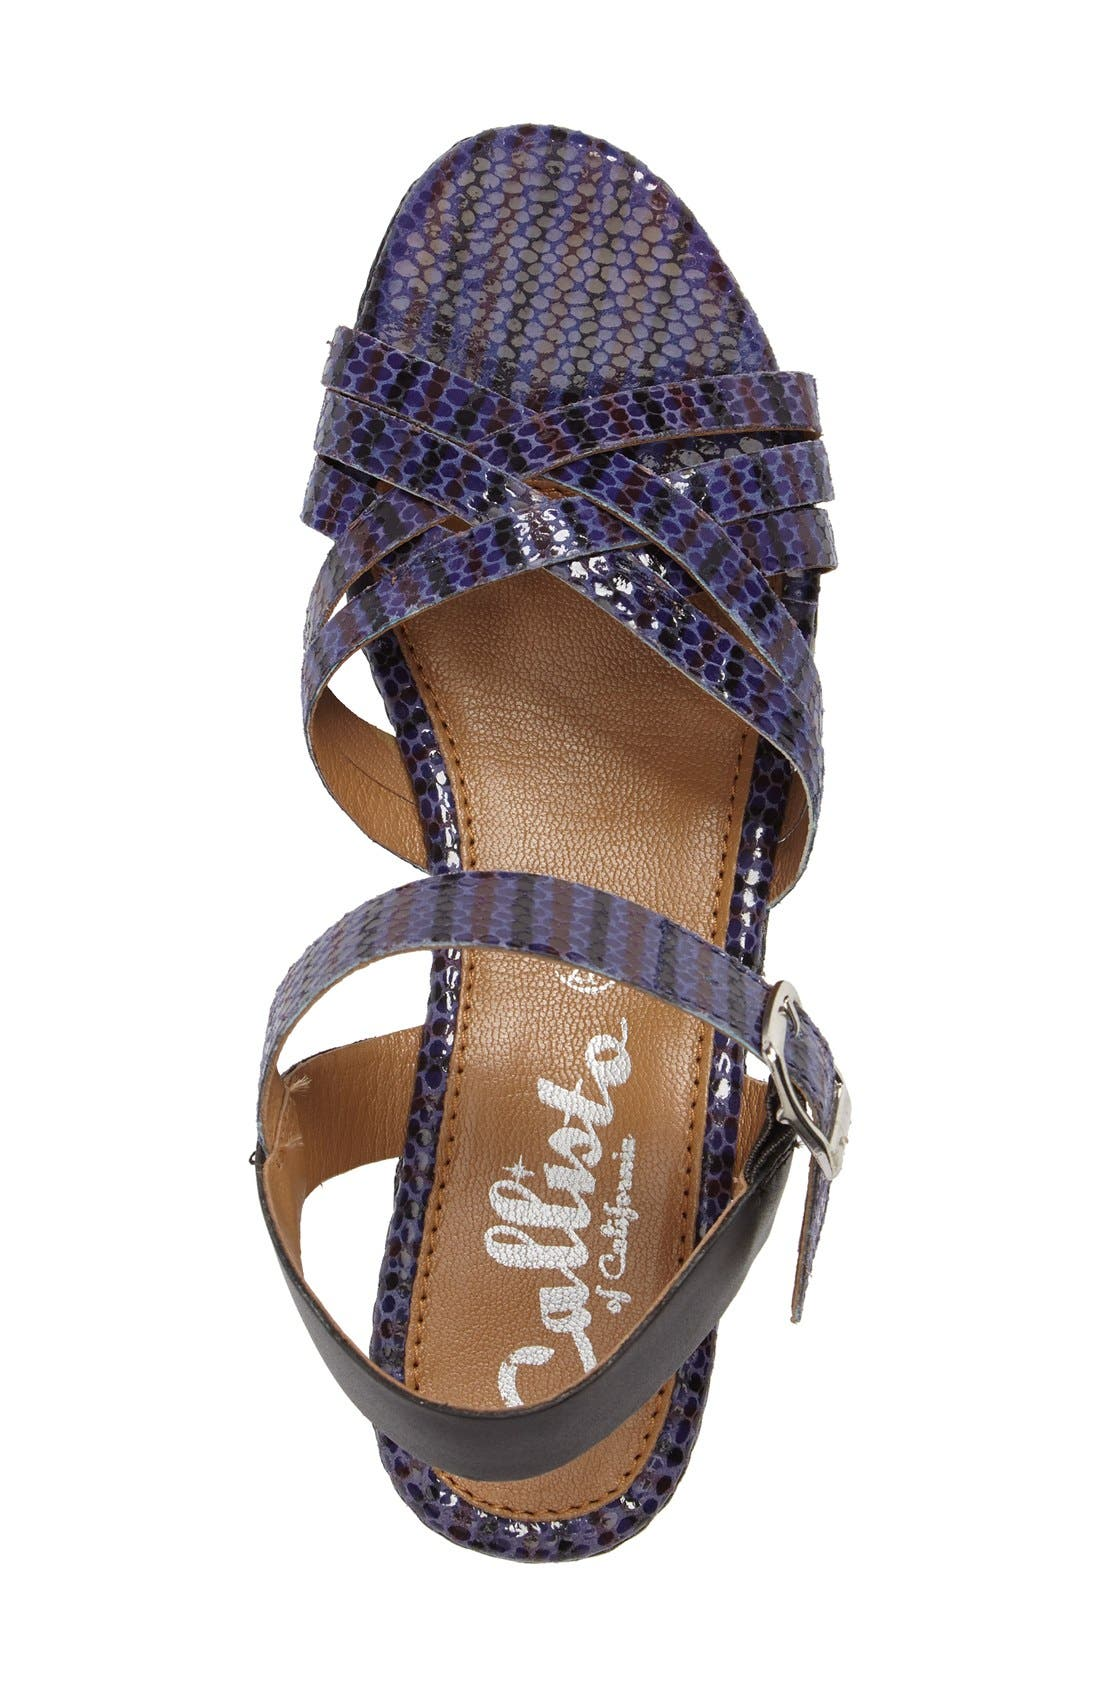 Valencia Platform Wedge Sandal,                             Alternate thumbnail 7, color,                             429